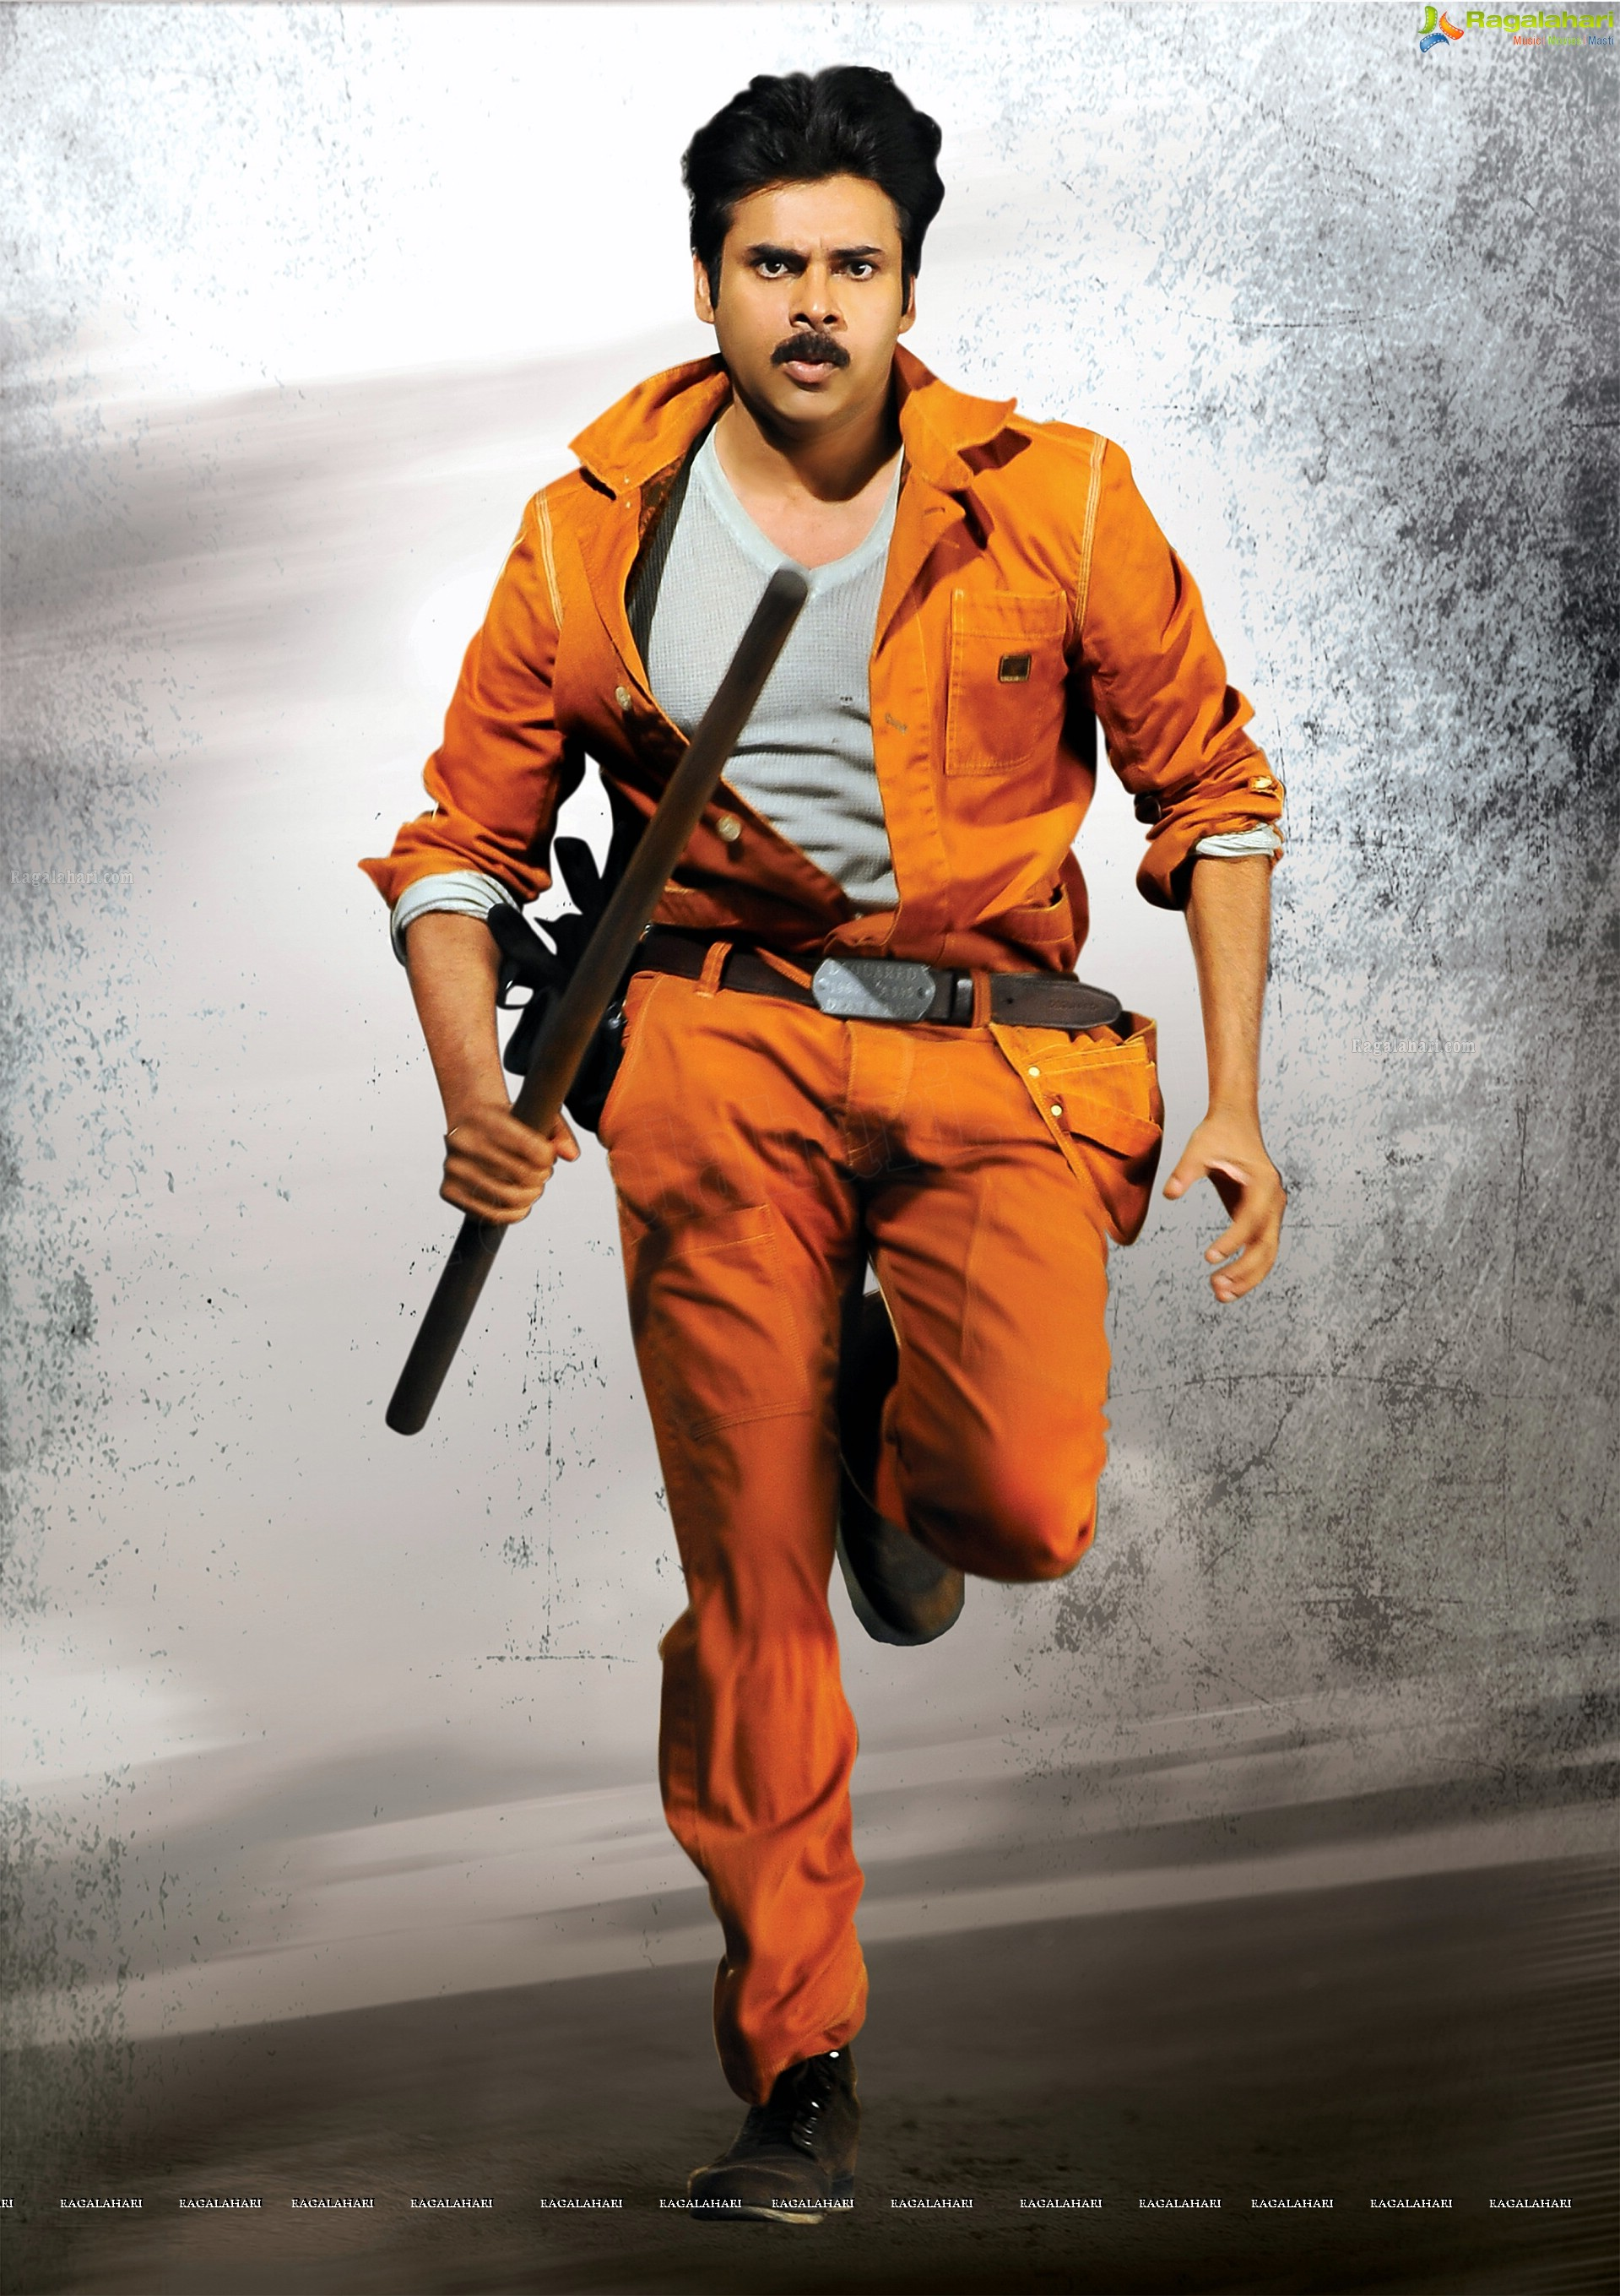 pawan kalyan (hd) image 2 | tollywood actress wallpapers ,images